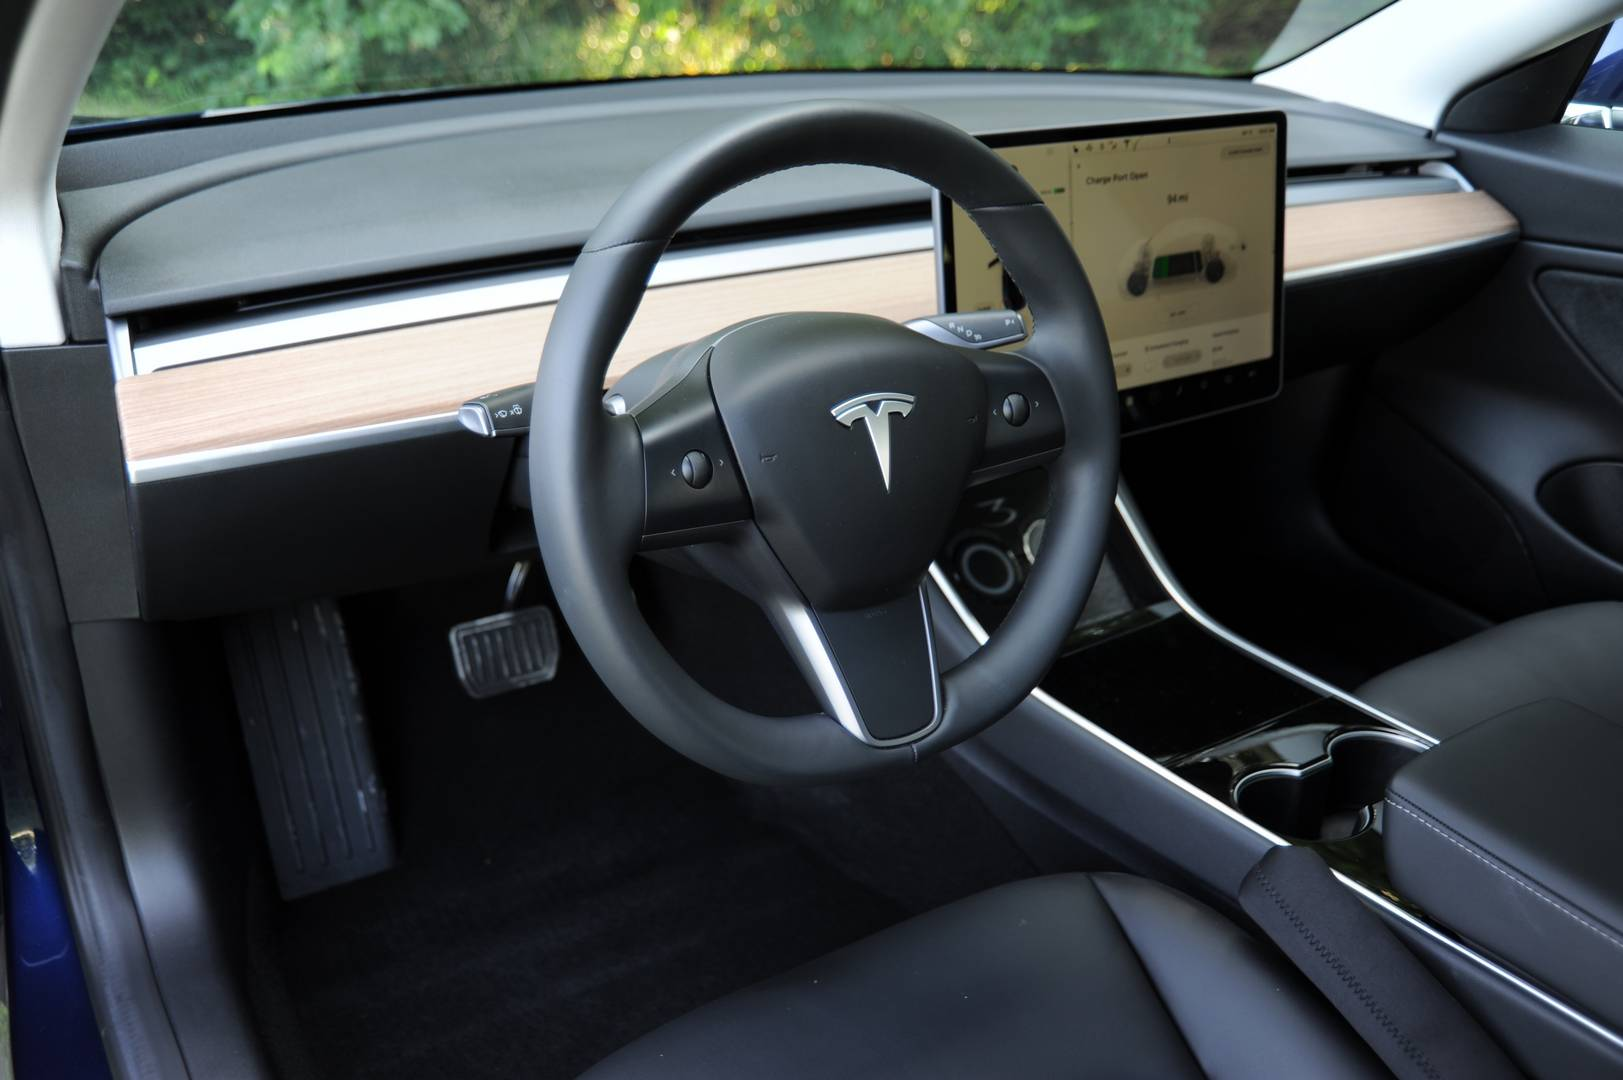 nhtsa gives the tesla model 3 a 5 star rating in every safety category 1reddrop. Black Bedroom Furniture Sets. Home Design Ideas